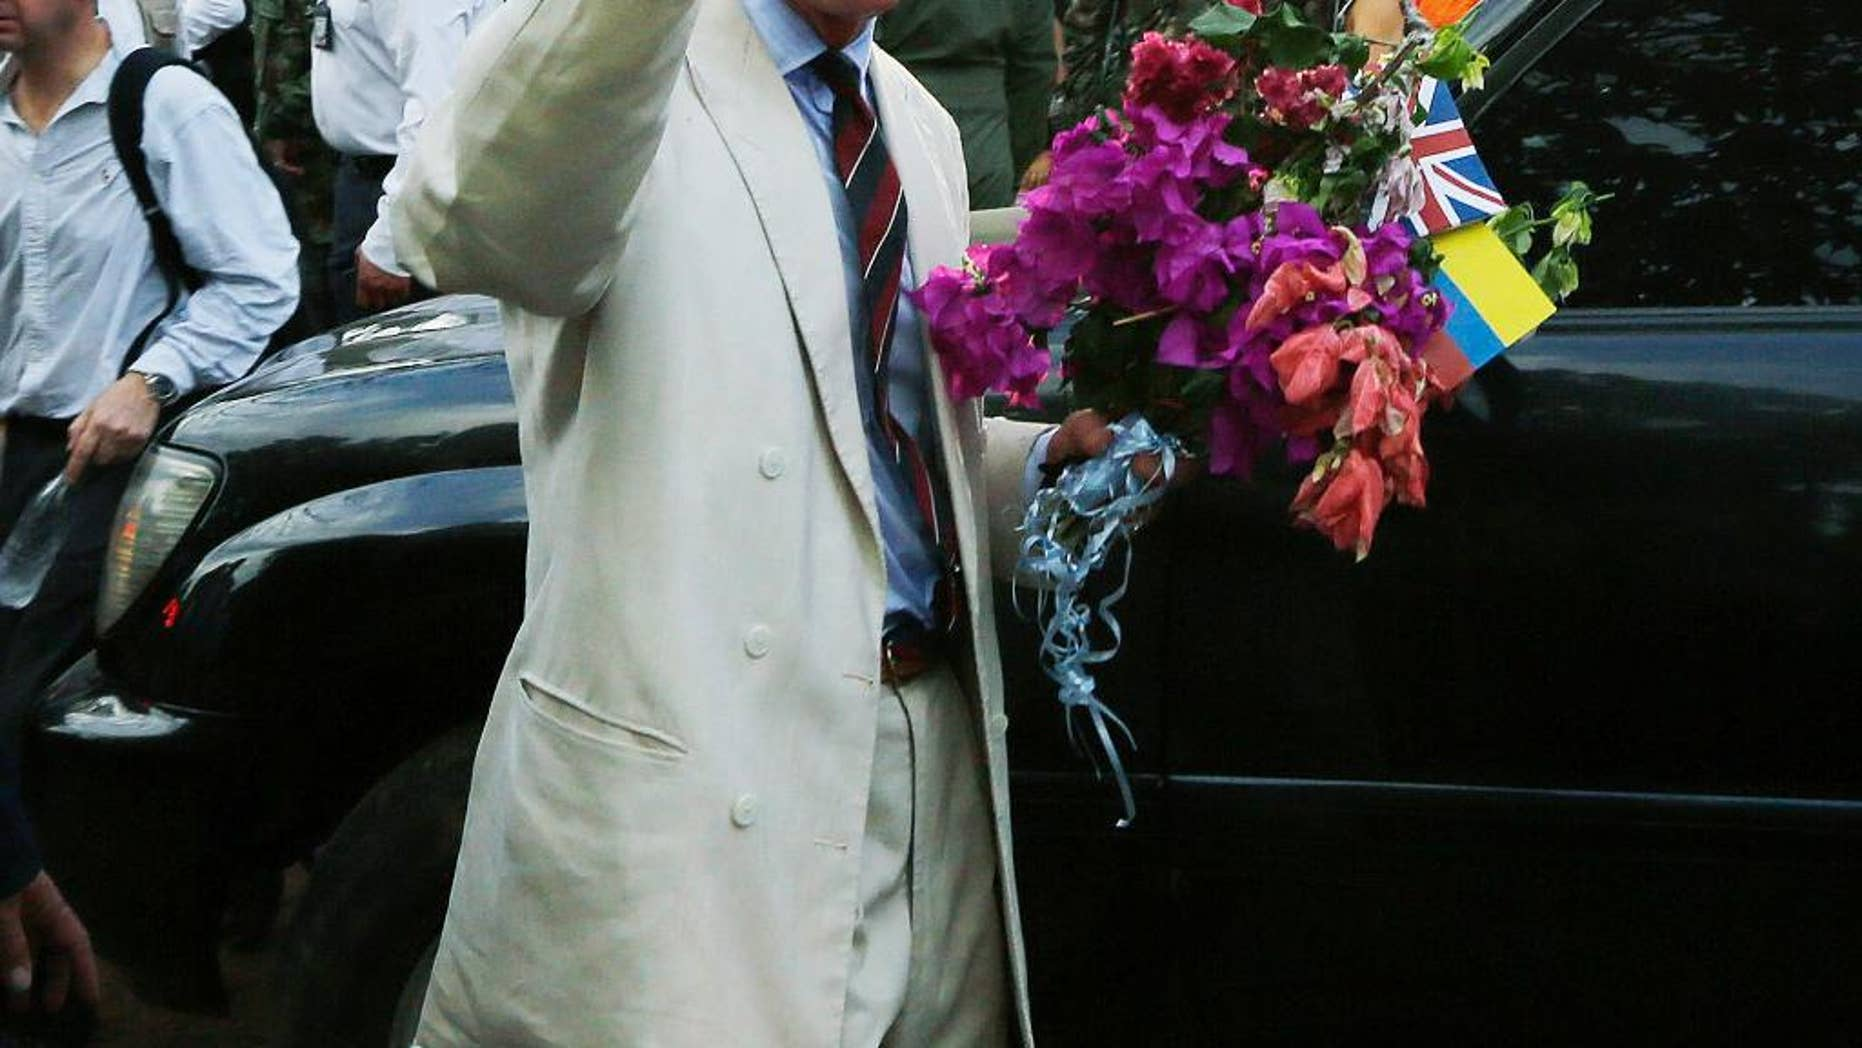 Britain's Prince Charles, right, waves towards local residents as he holds a bouquet of flowers that was given to him during a visit to La Macarena, Colombia, Thursday, Oct. 30, 2014. Prince Charles and his wife Camilla are in Colombia as part of a nine-day tour of Latin America. (AP Photo/Fernando Vergara)